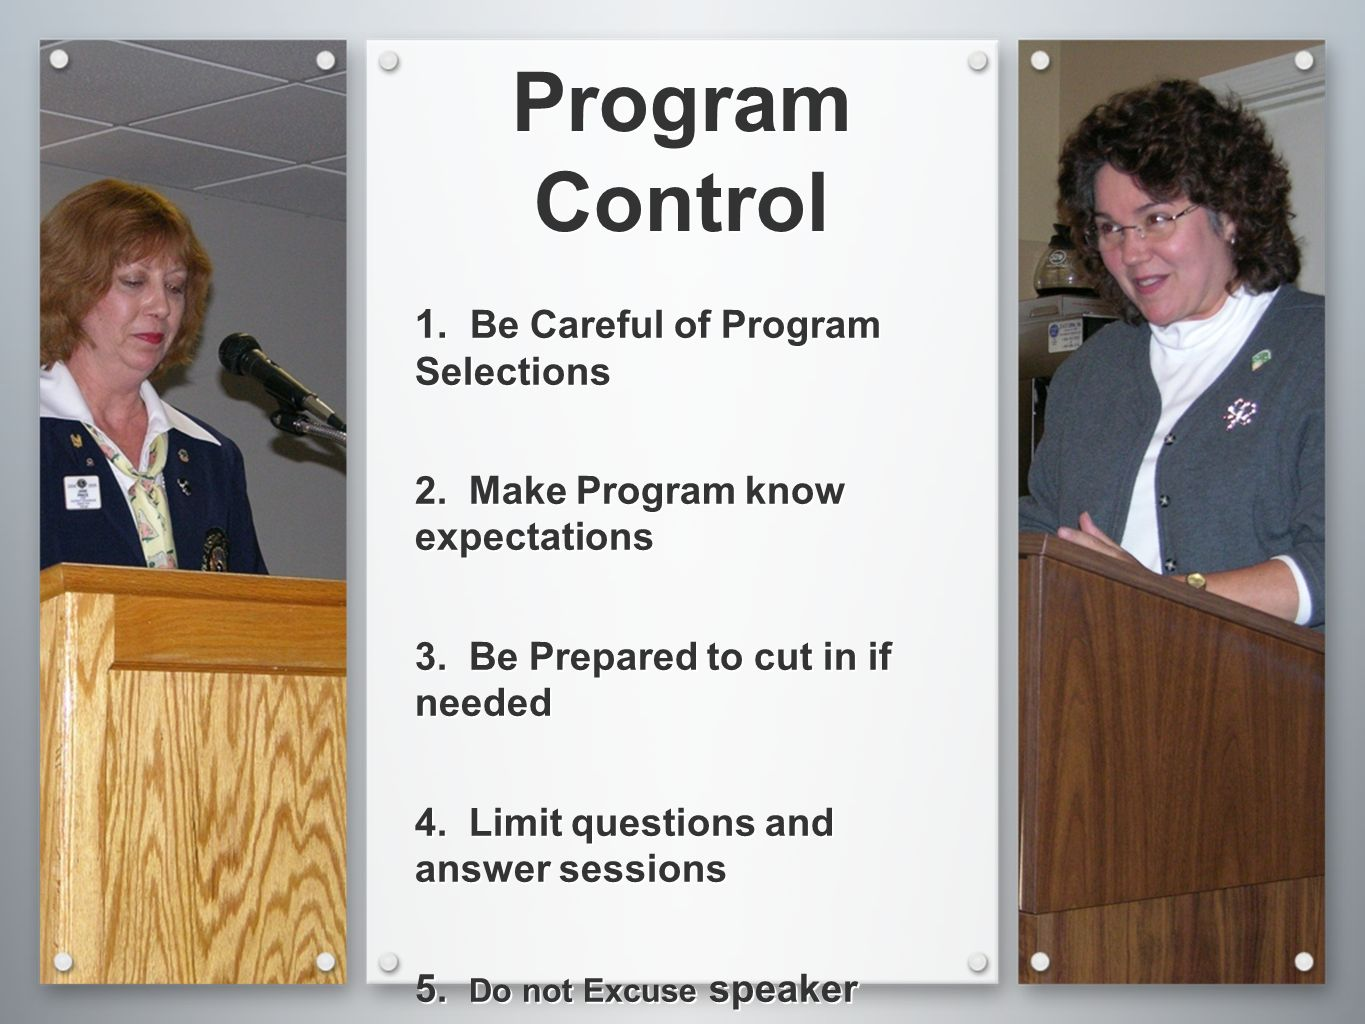 Program Control 1. Be Careful of Program Selections 2. Make Program know expectations 3. Be Prepared to cut in if needed 4. Limit questions and answer